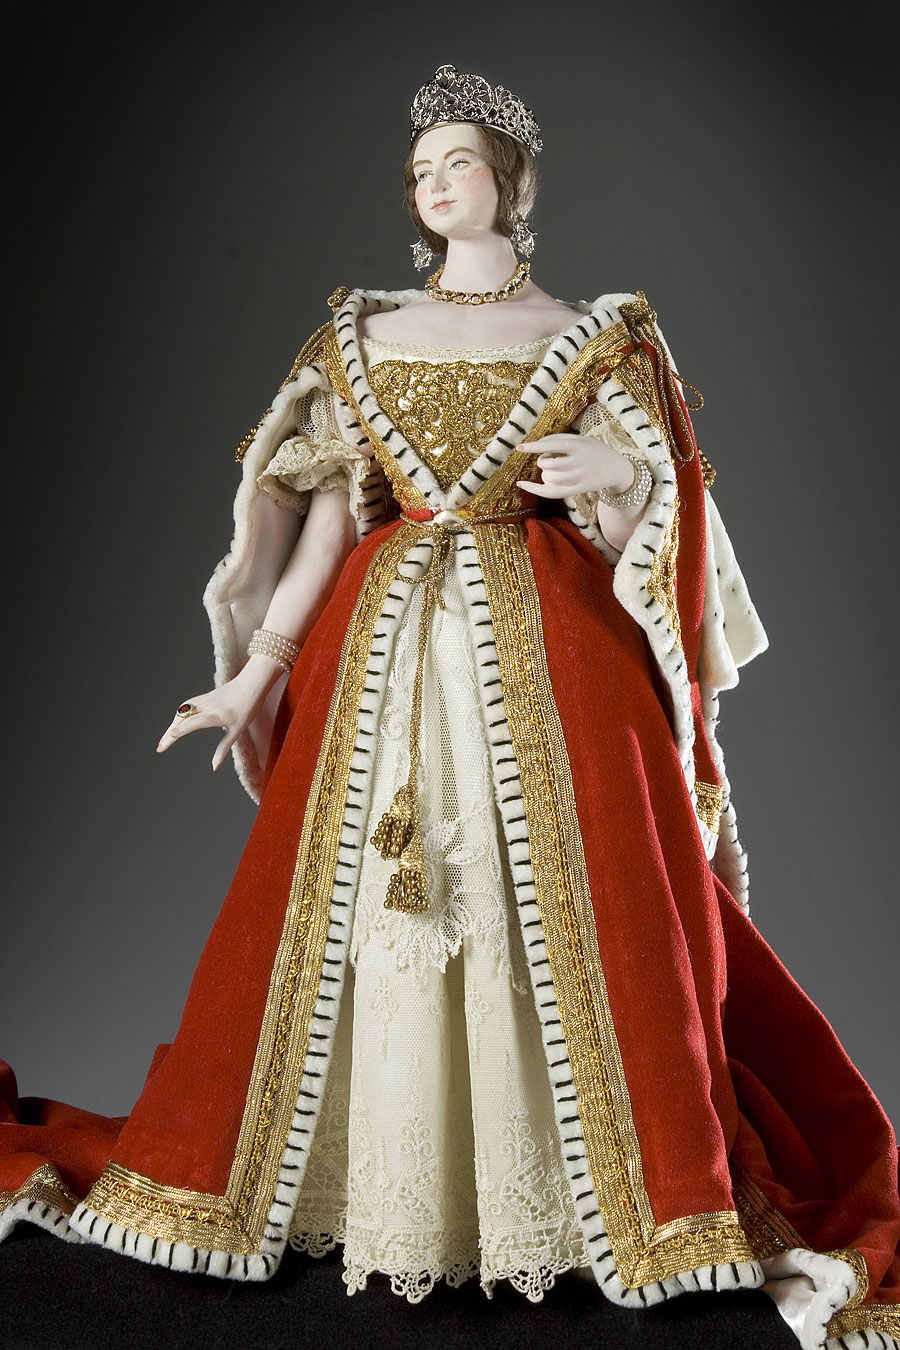 Queen Victoria In Coronation Dress By George Stuart